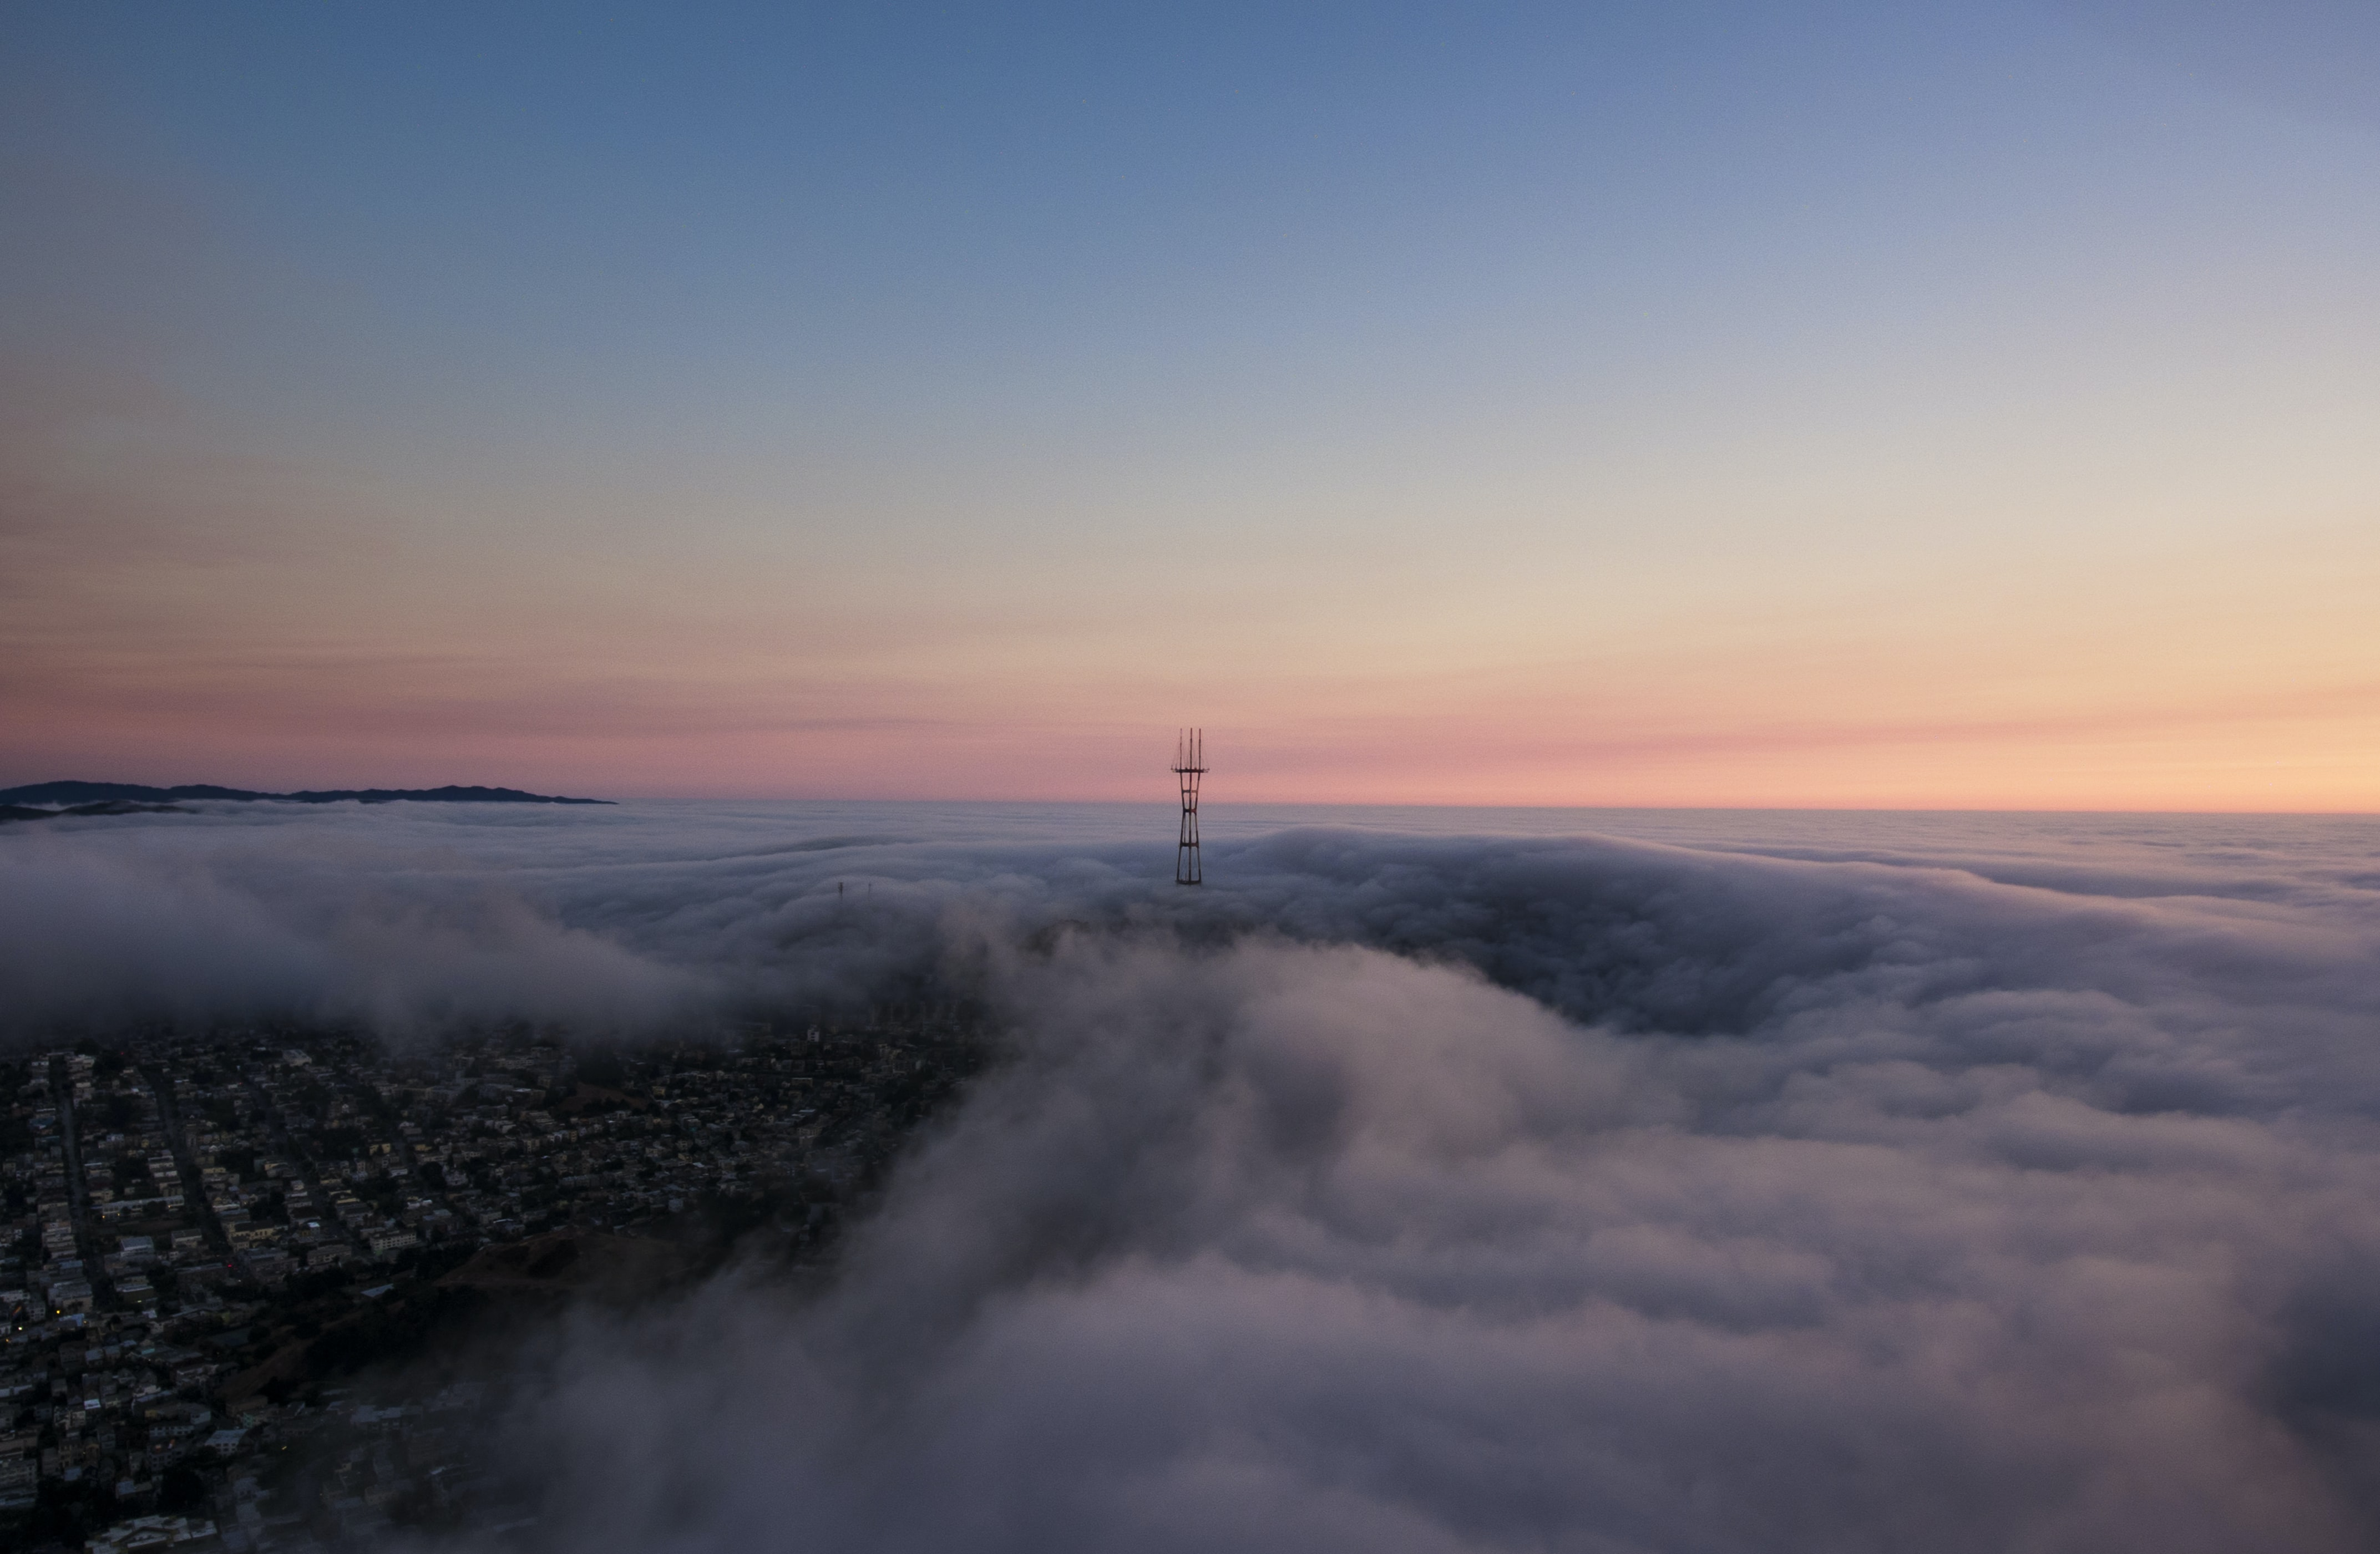 A drone shot aerial view of the clouds over Buena Vista Park at sunset